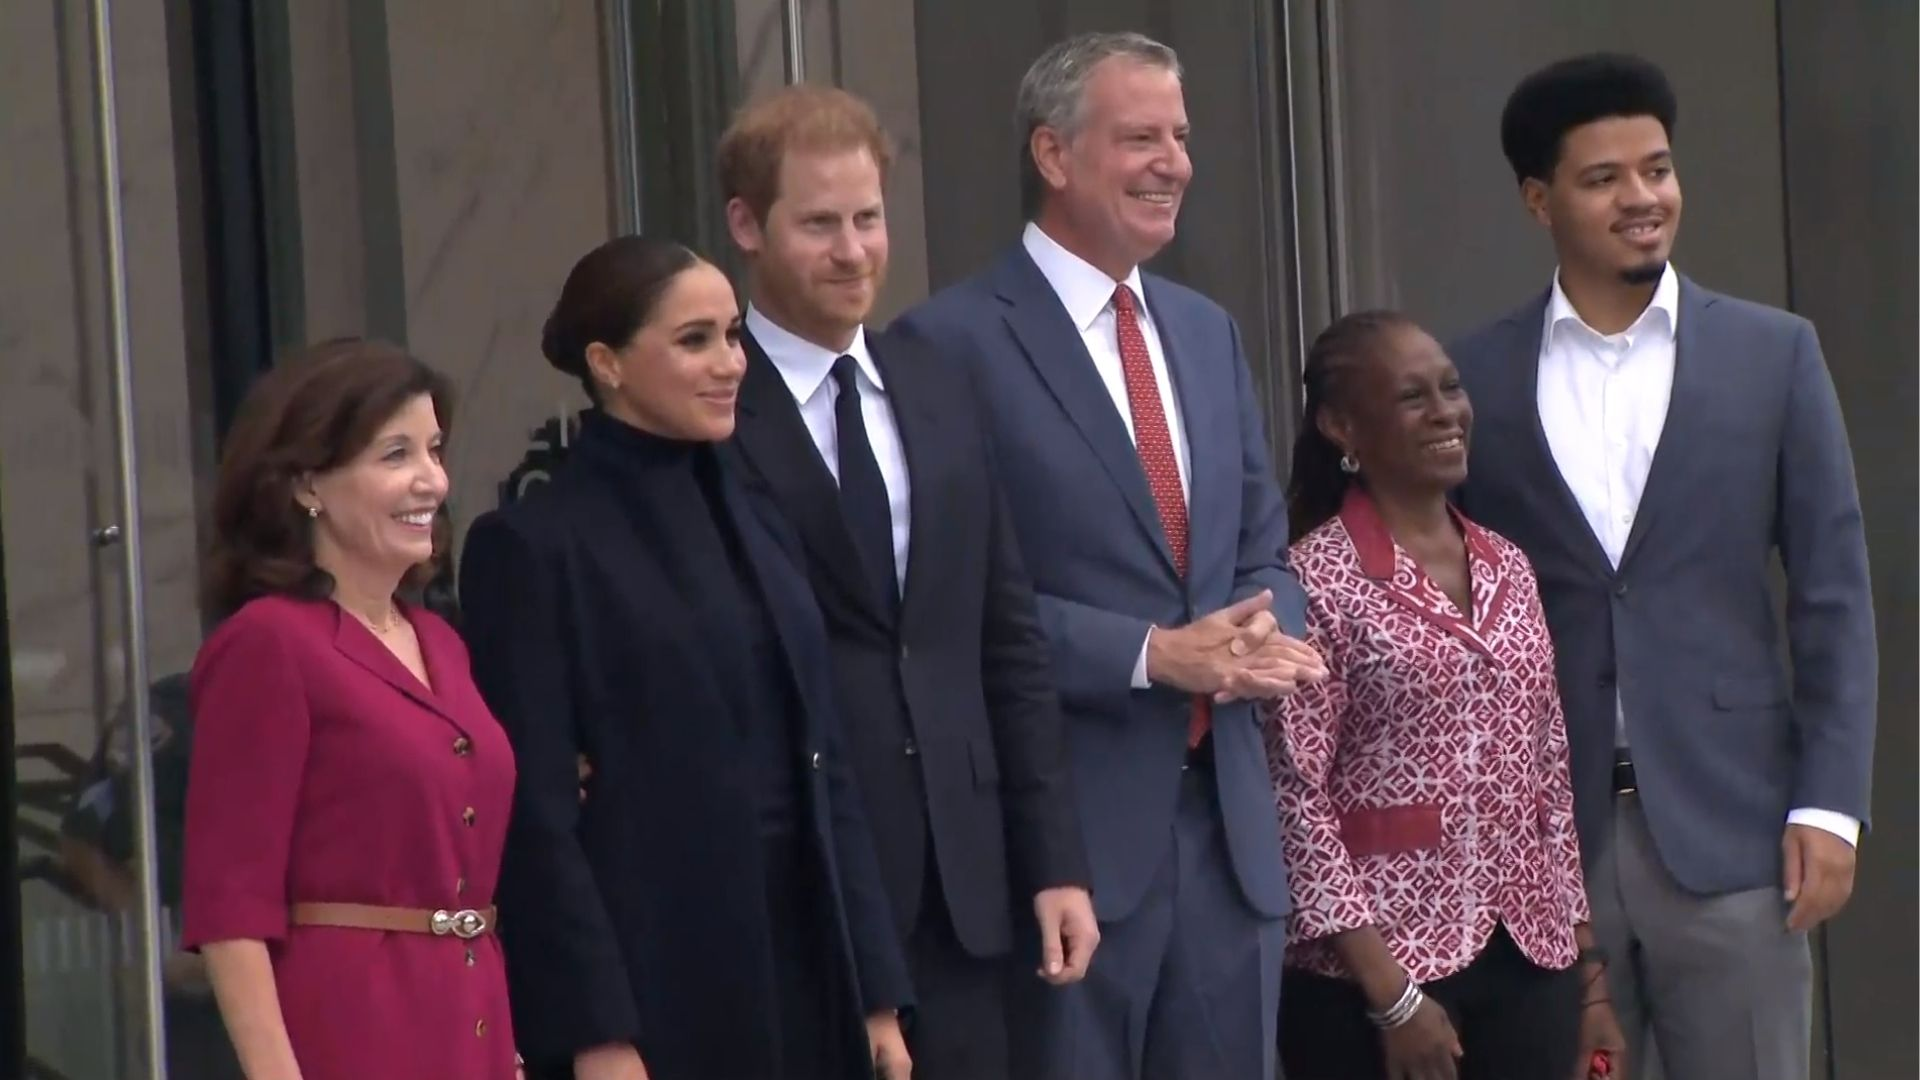 Meghan Markle and Prince Harry in NYC